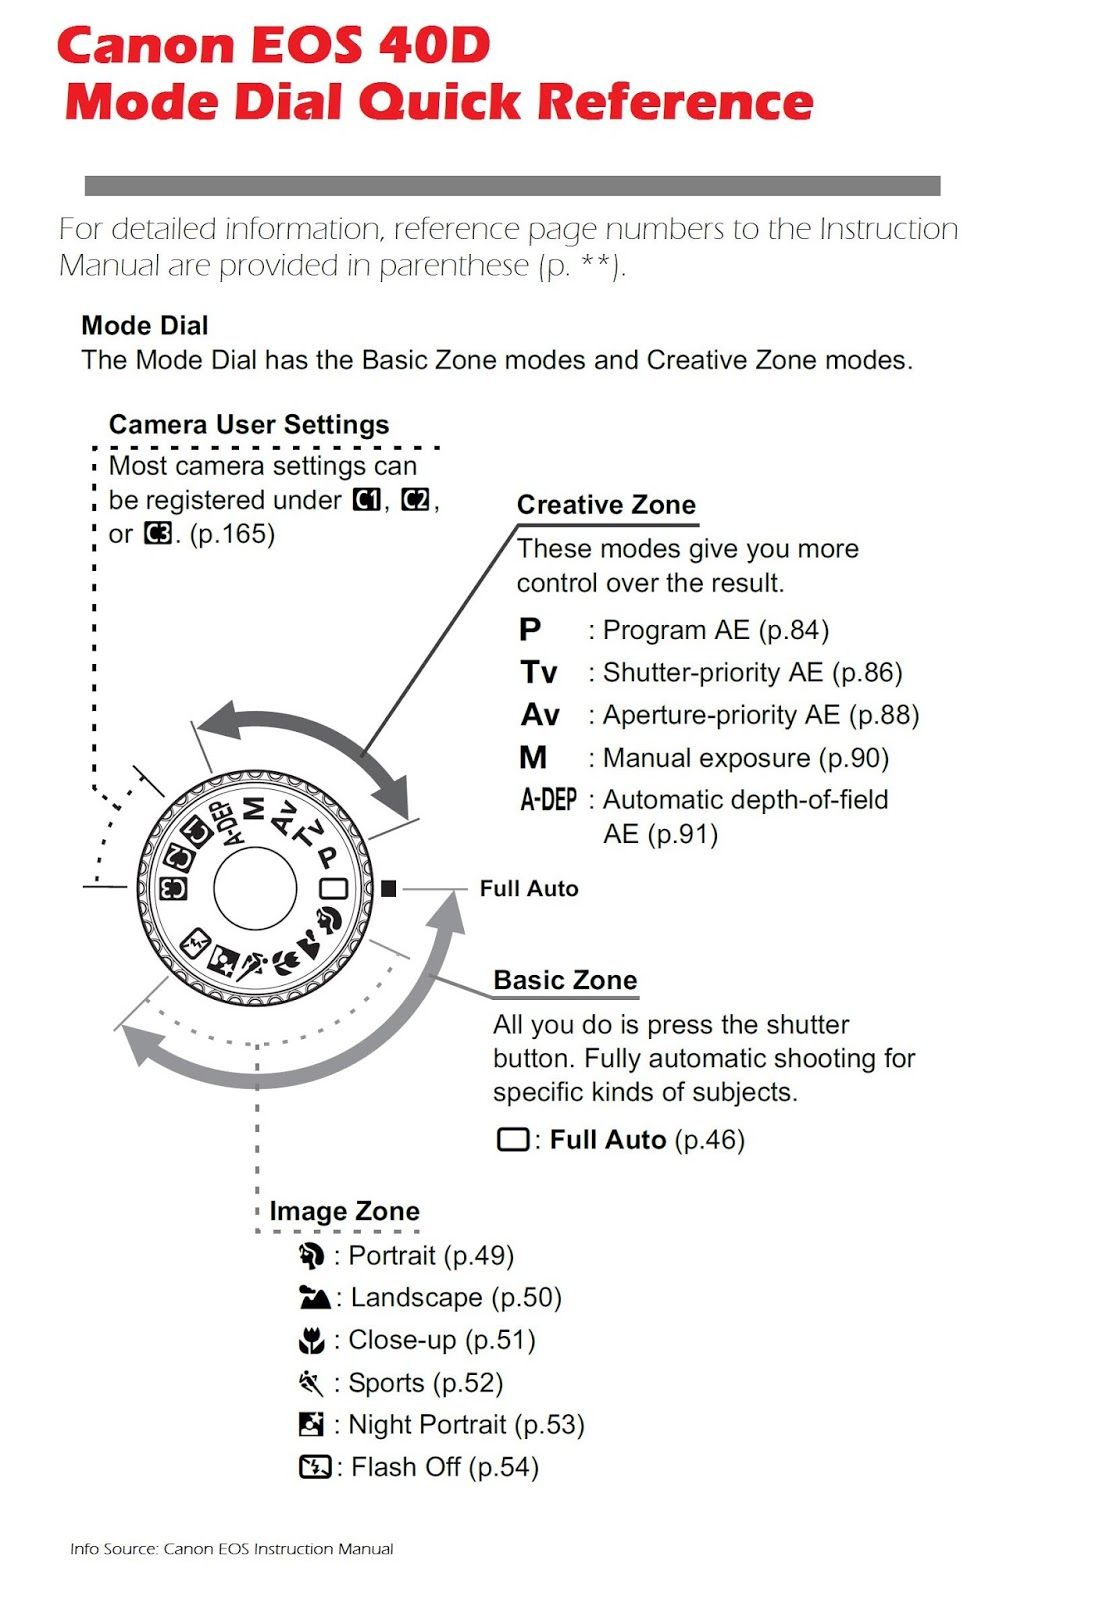 Canon EOS 40D Camera Mode Dial Quick Reference. There's more of these  useful resources, just click on the image and check out the site.